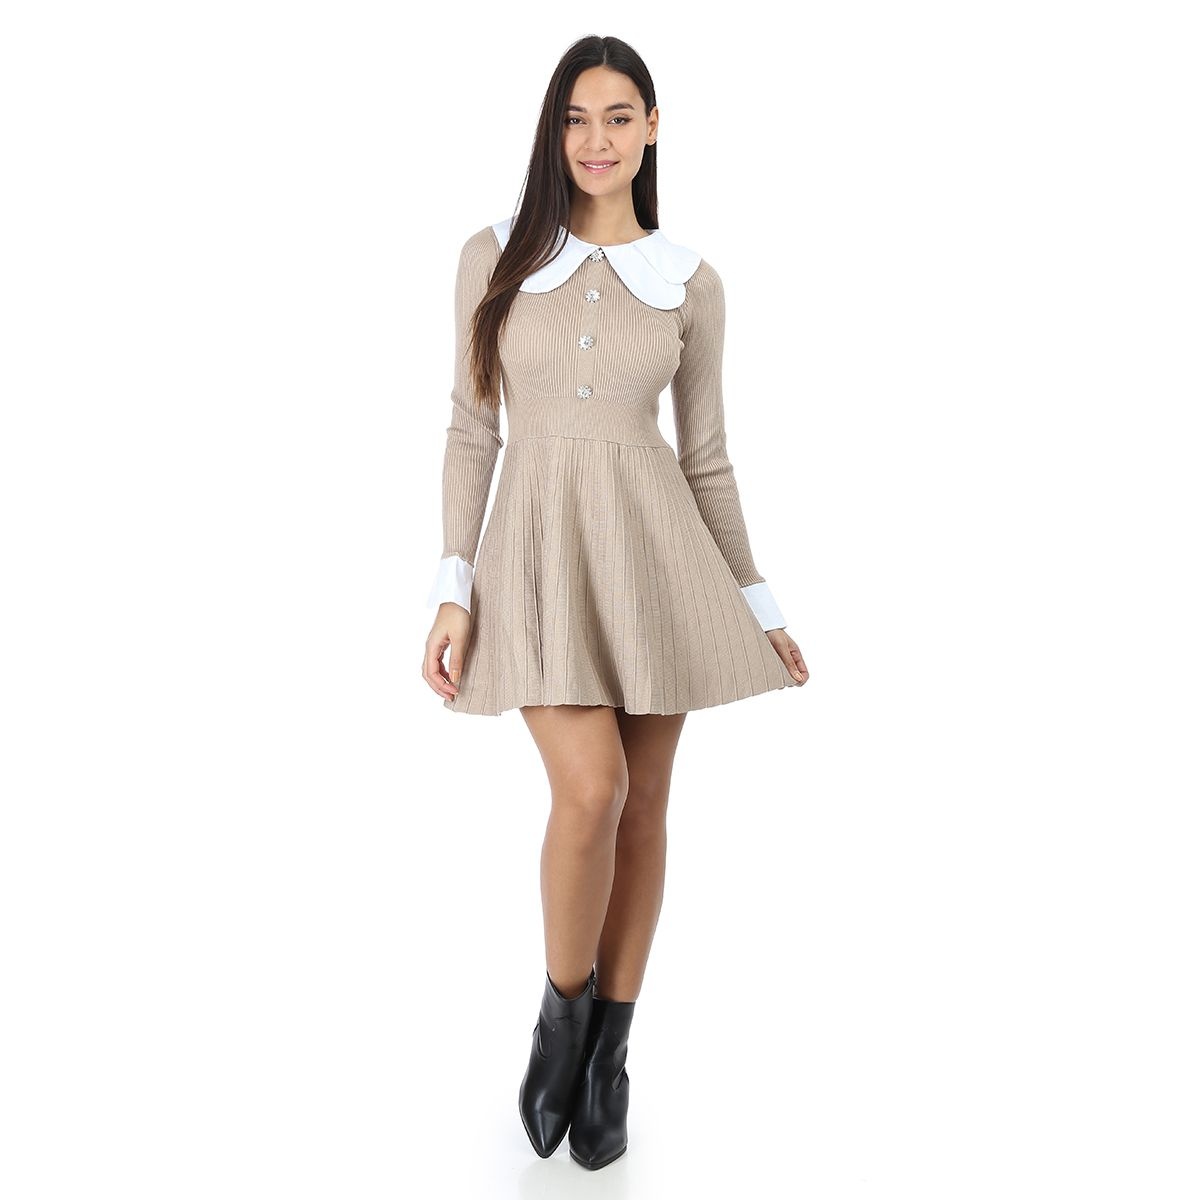 Robe taupe à col claudine et boutons strass